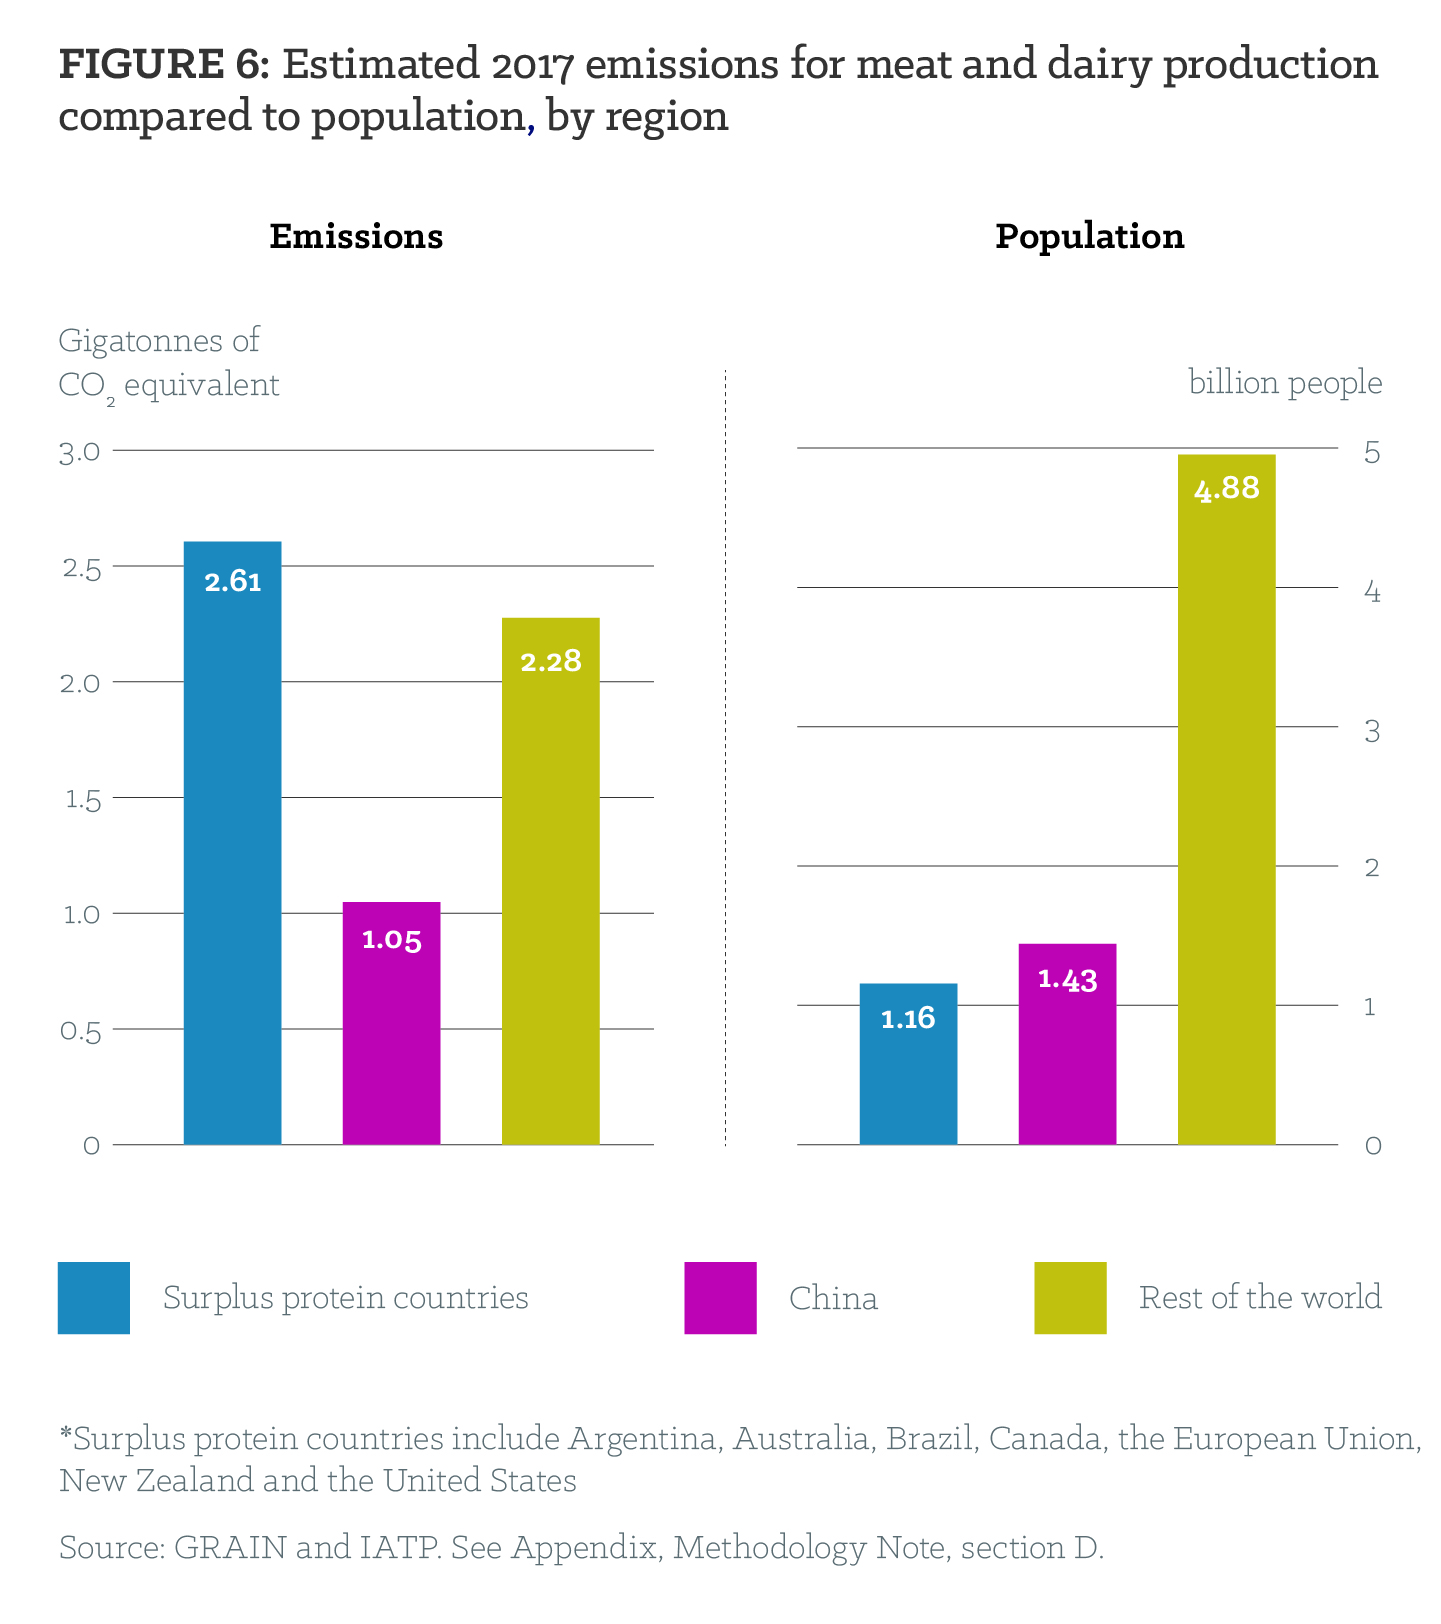 Figure 6: Estimated 2017 emissions for meat and dairy production compared to population by region